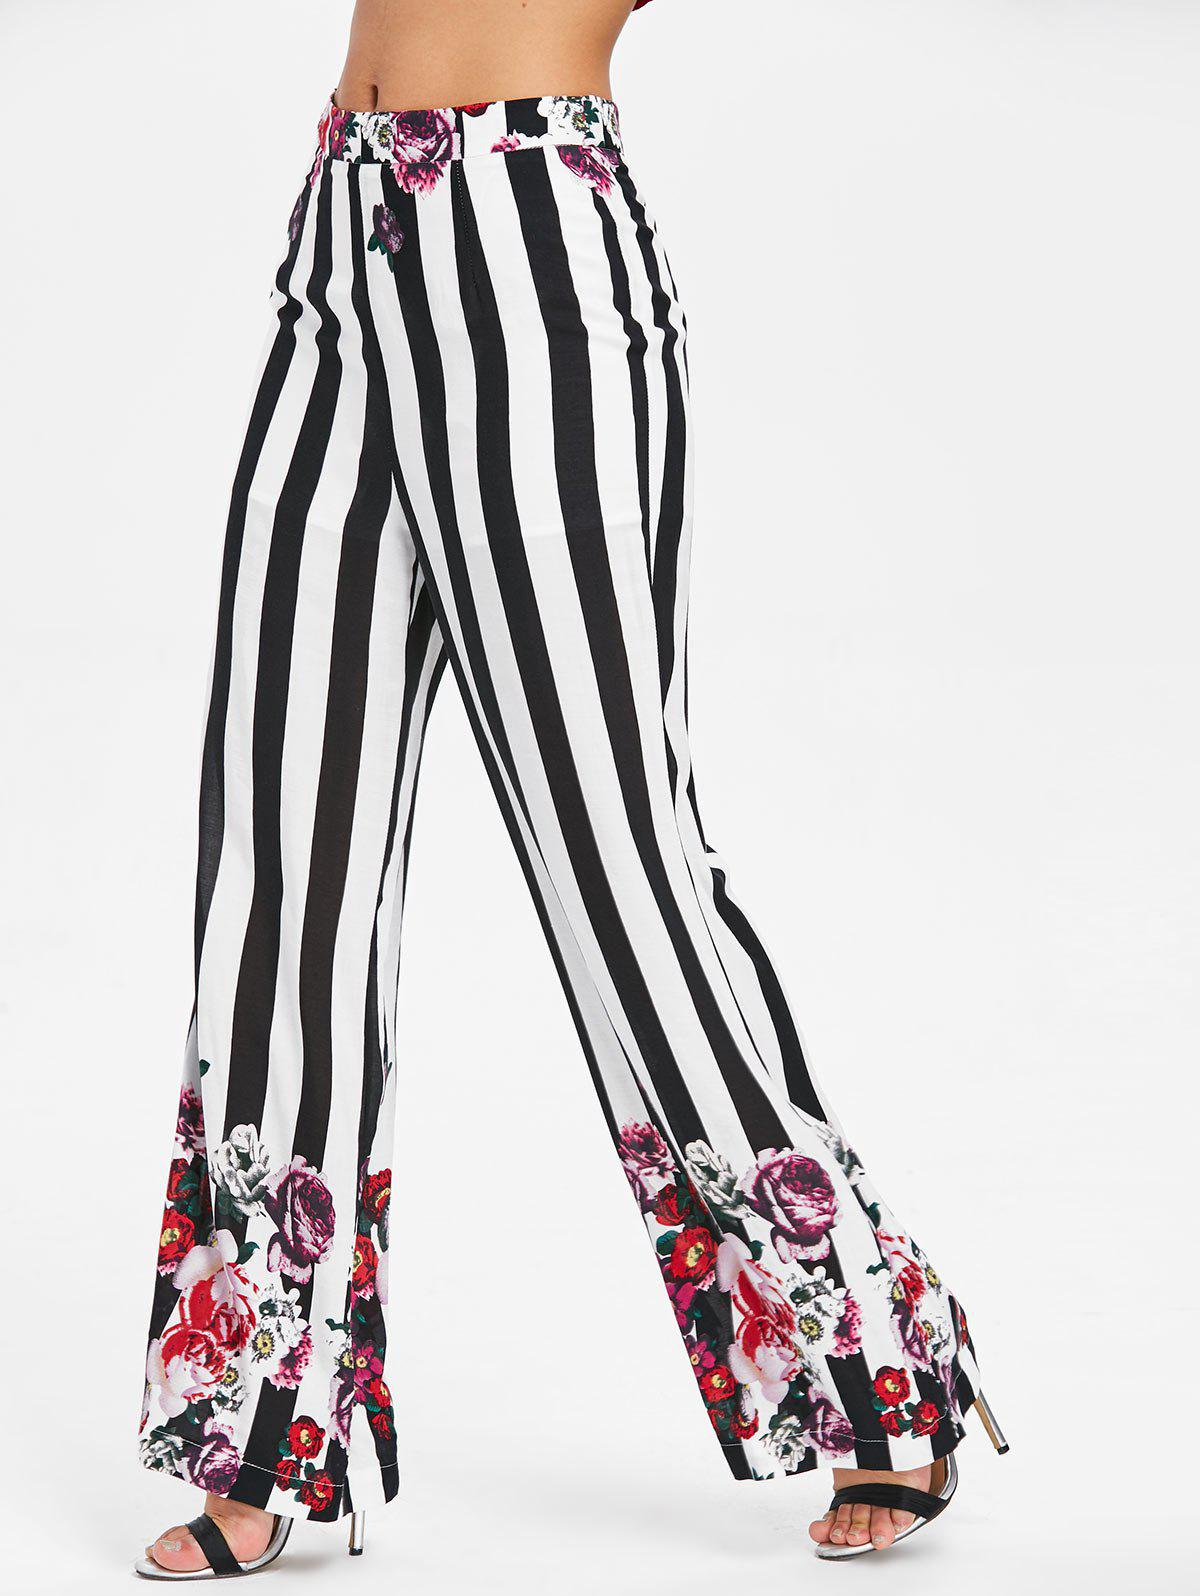 Striped Floral Print Palazzo Pants - WHITE 2XL